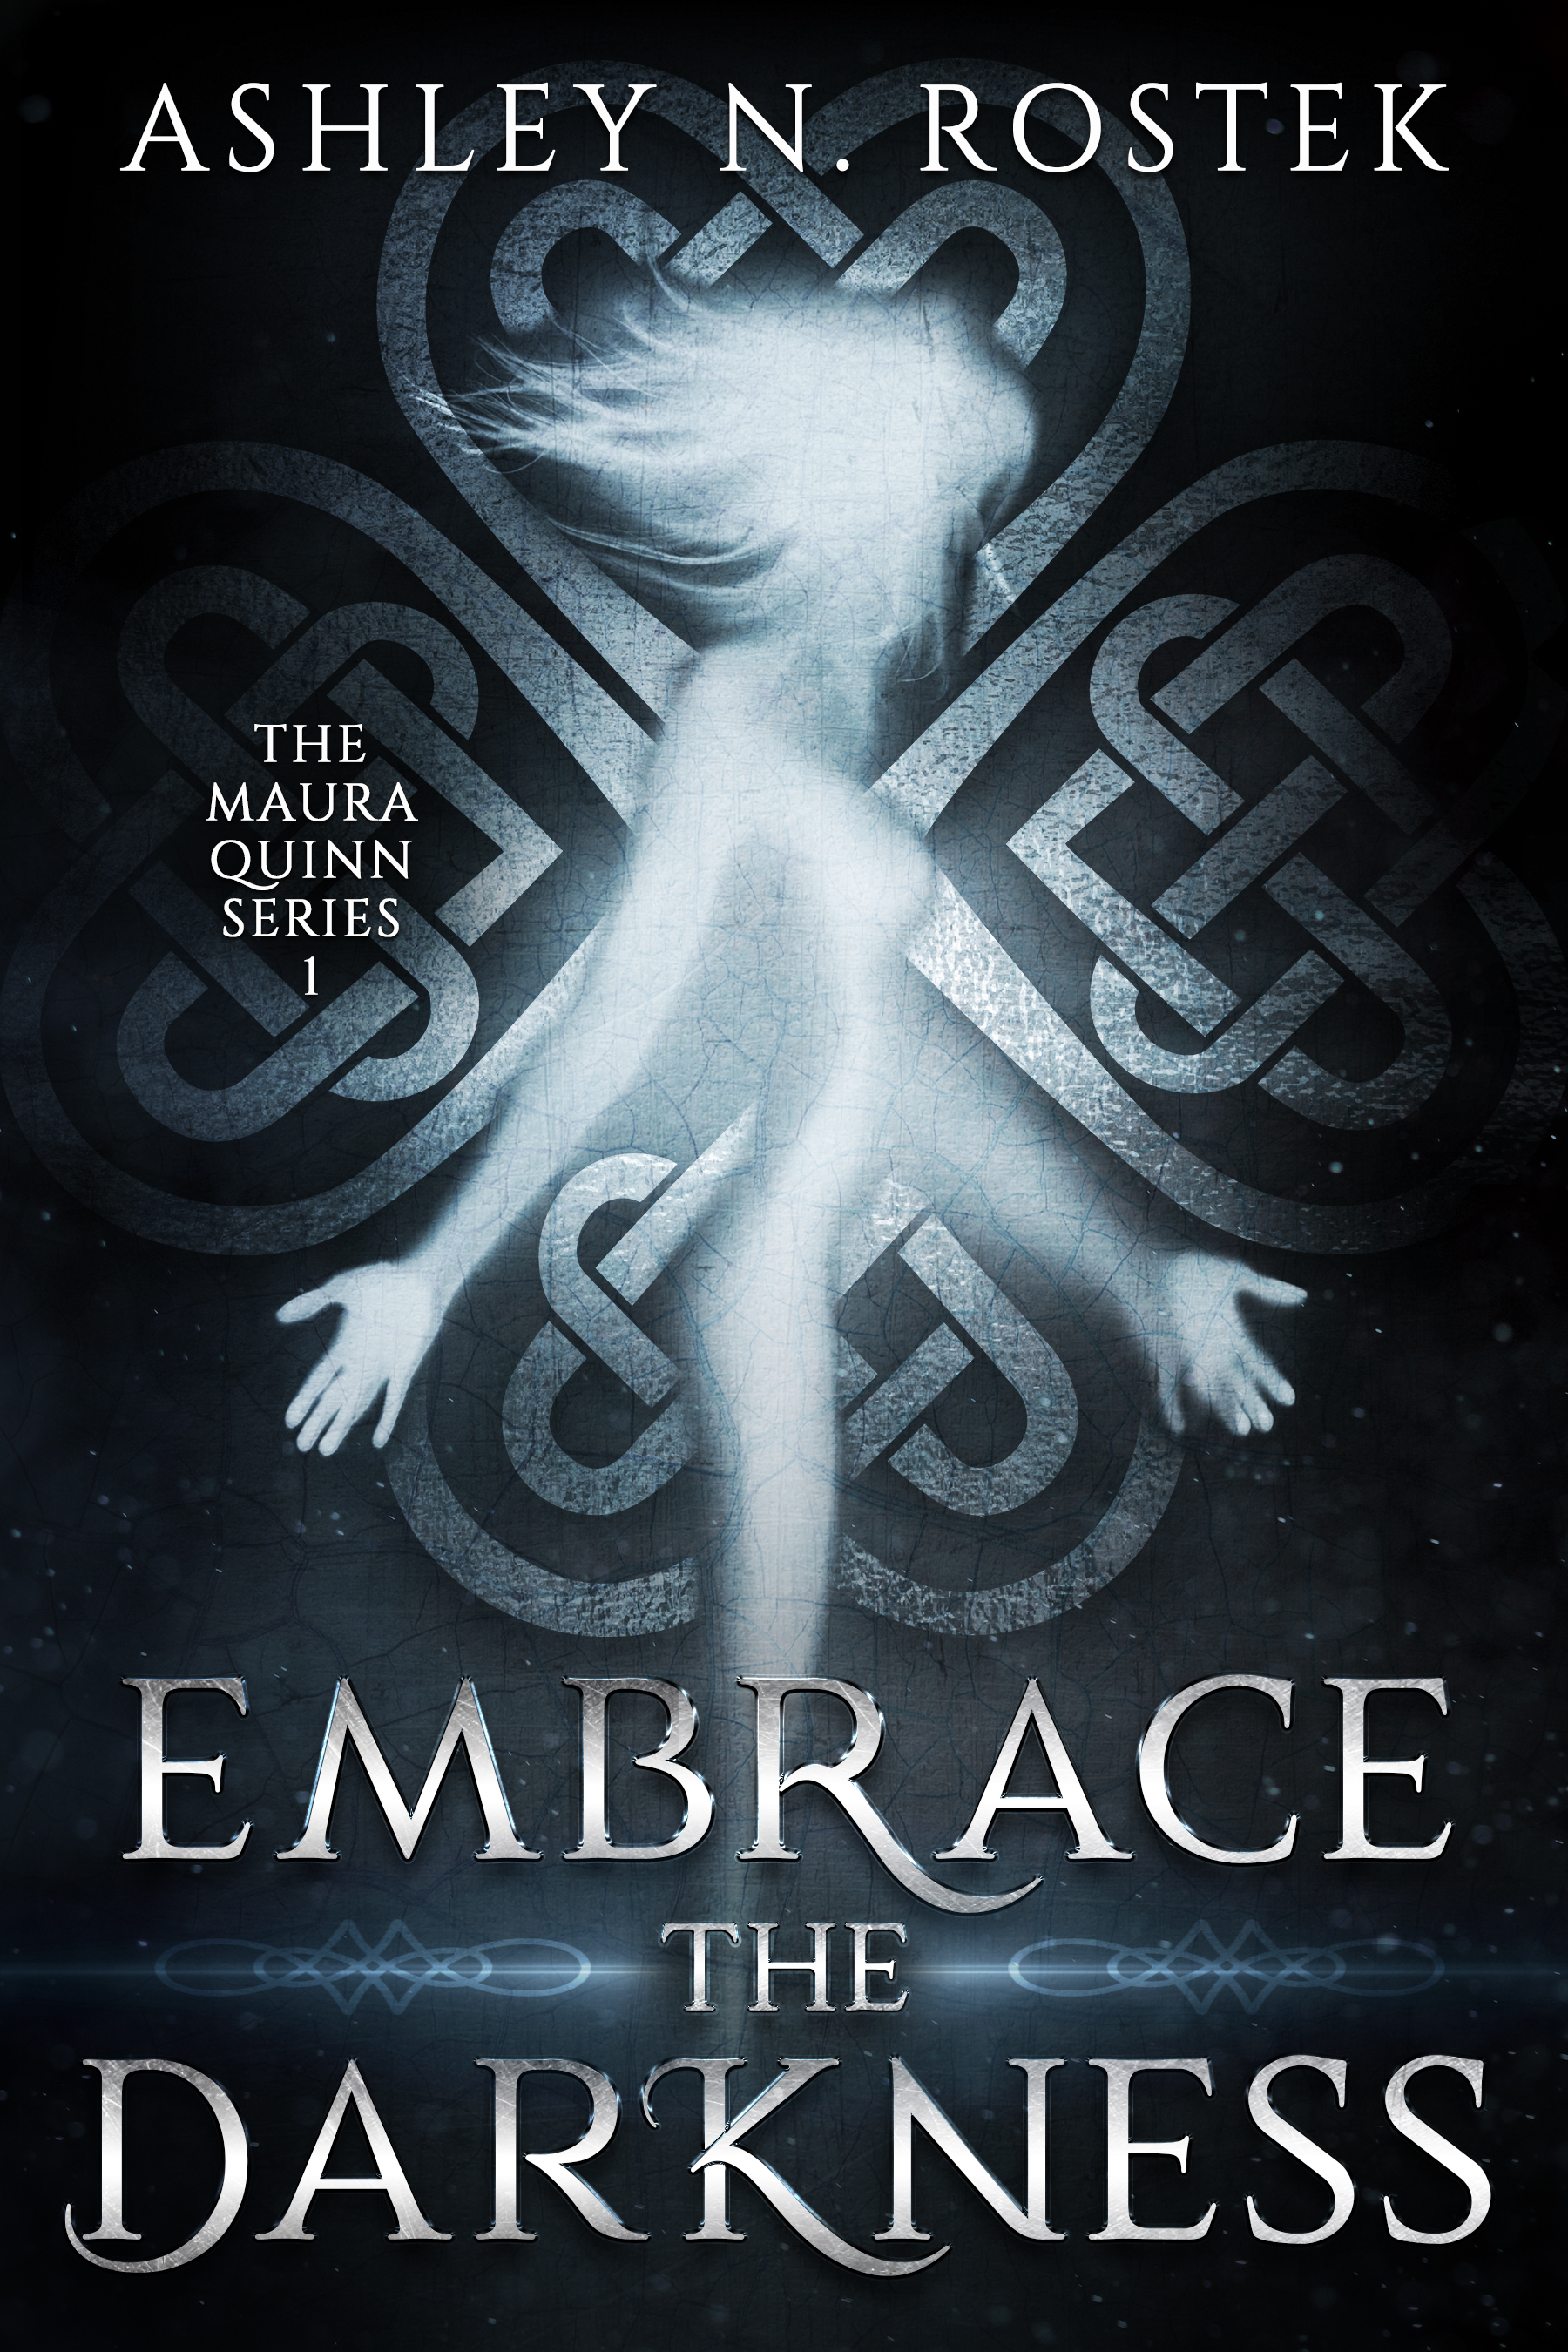 Embrace the Darkness- Ashley N. Rostek